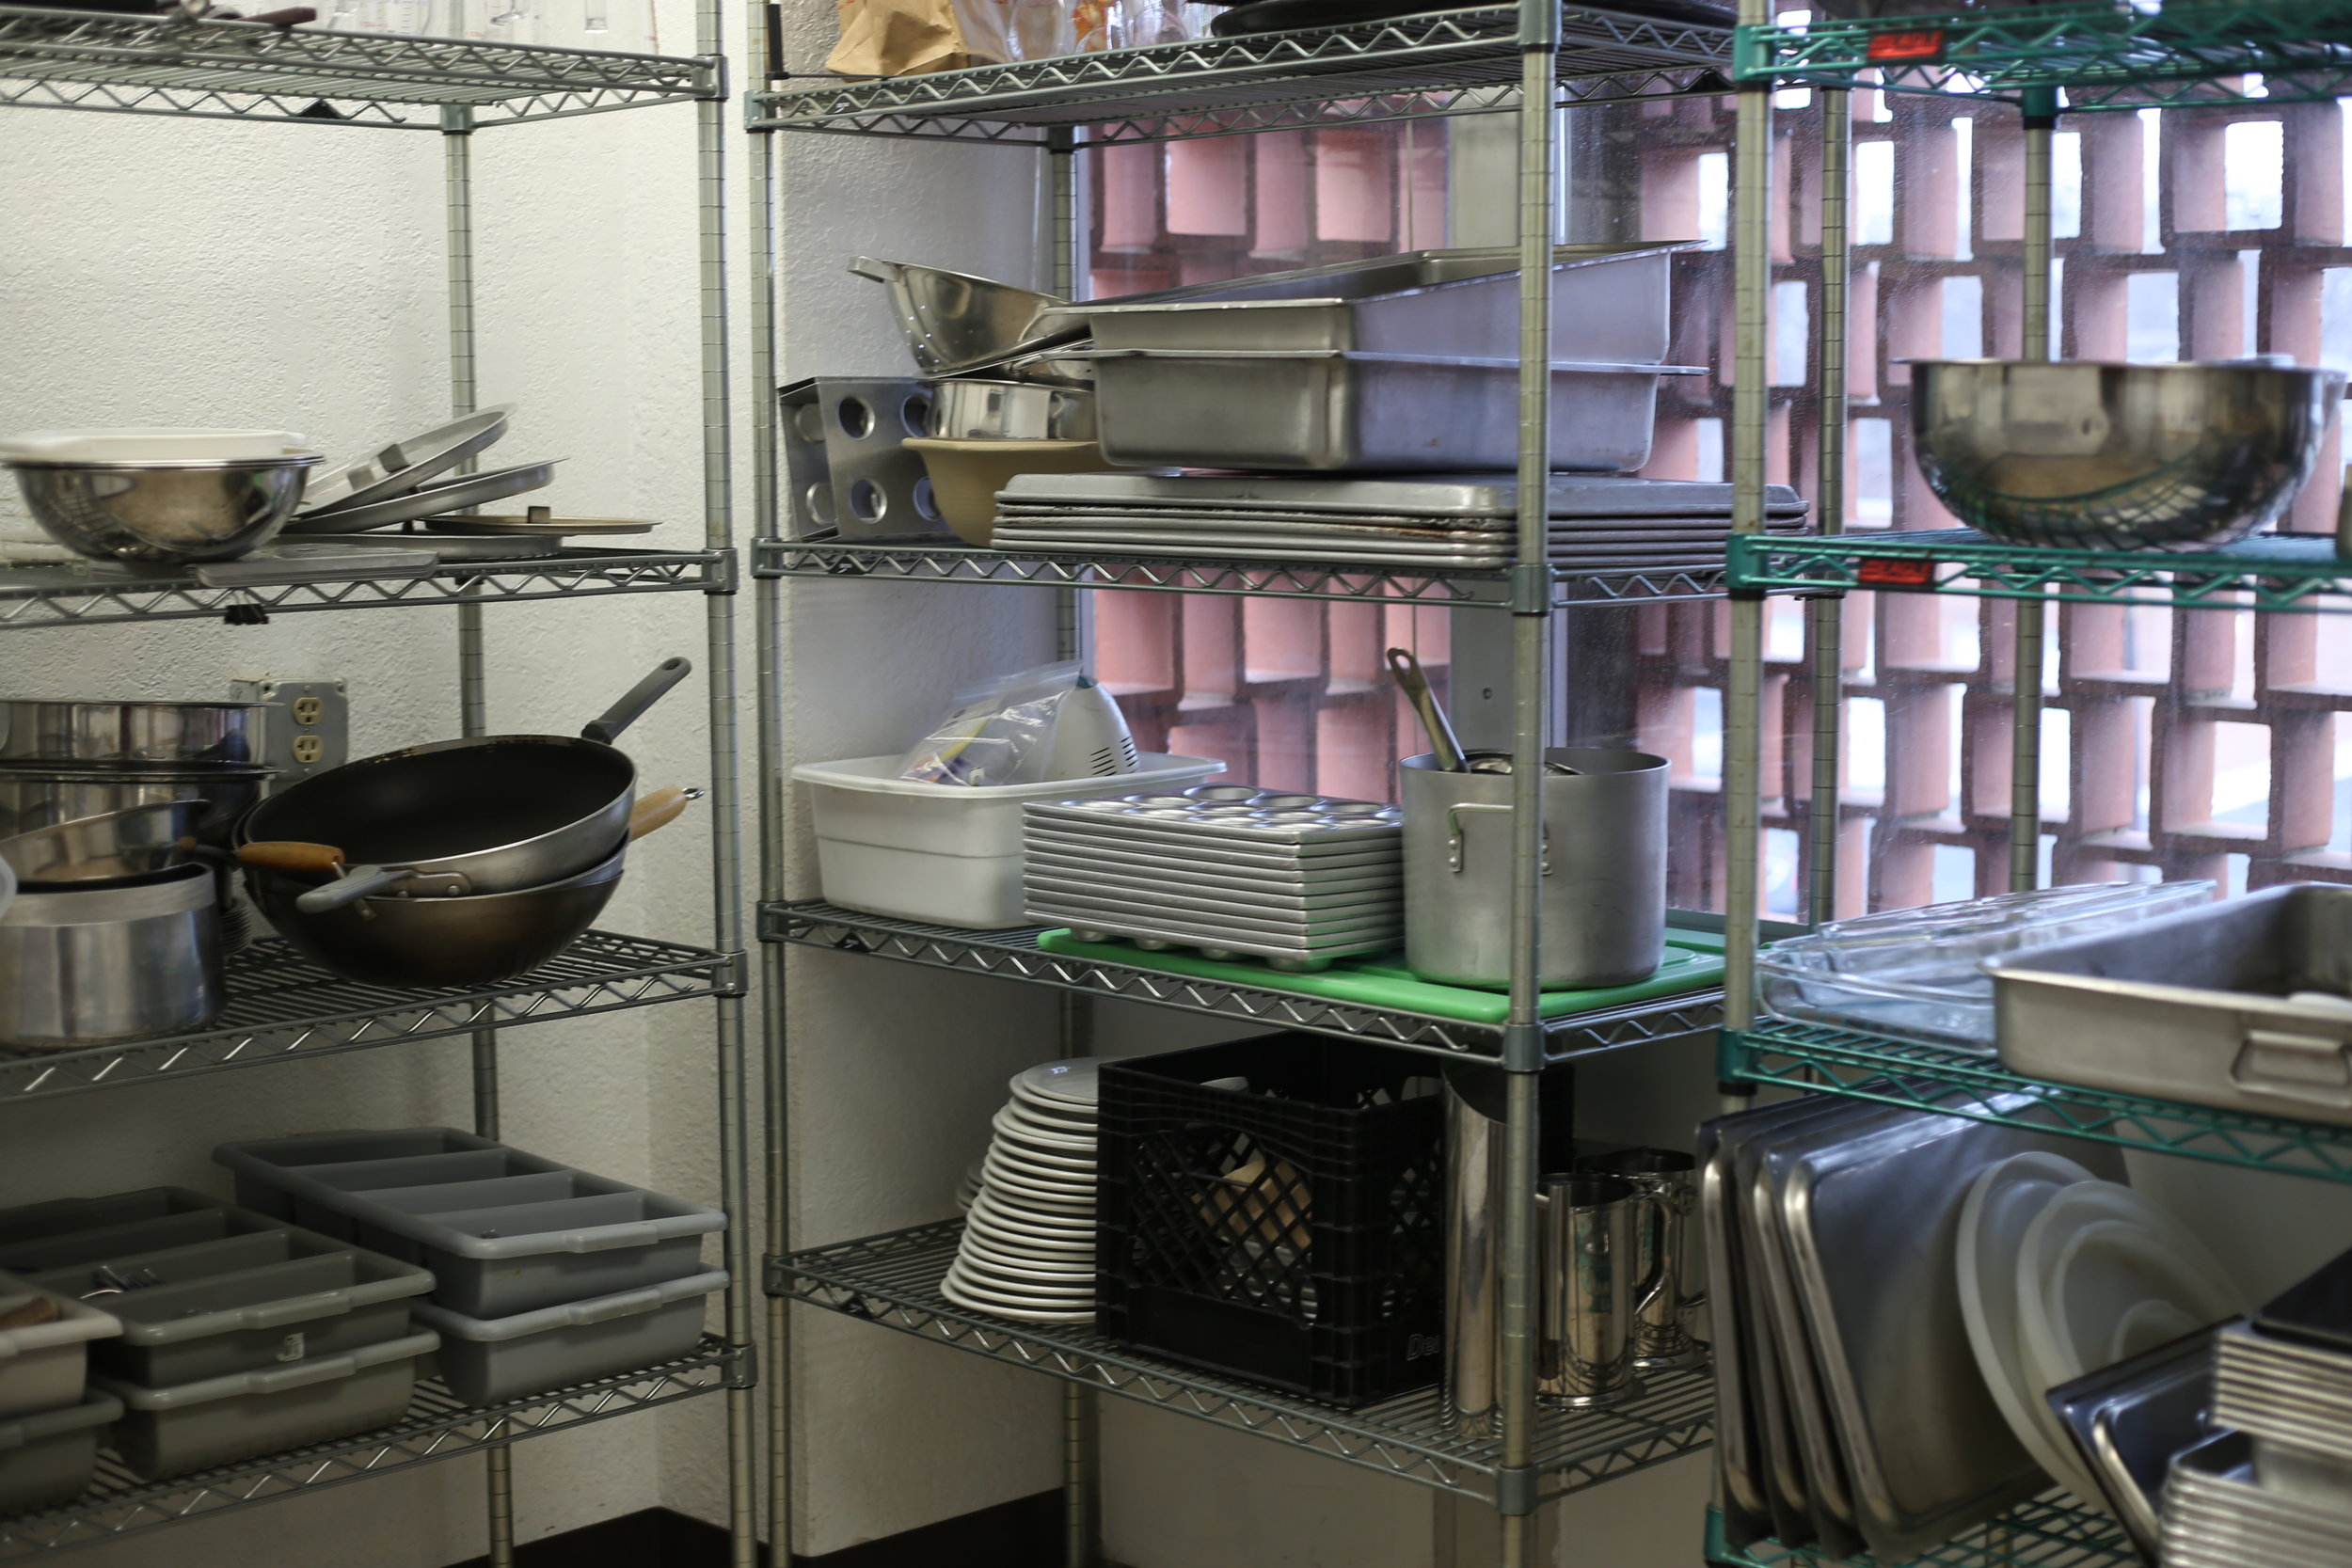 Culinary arts storage closet